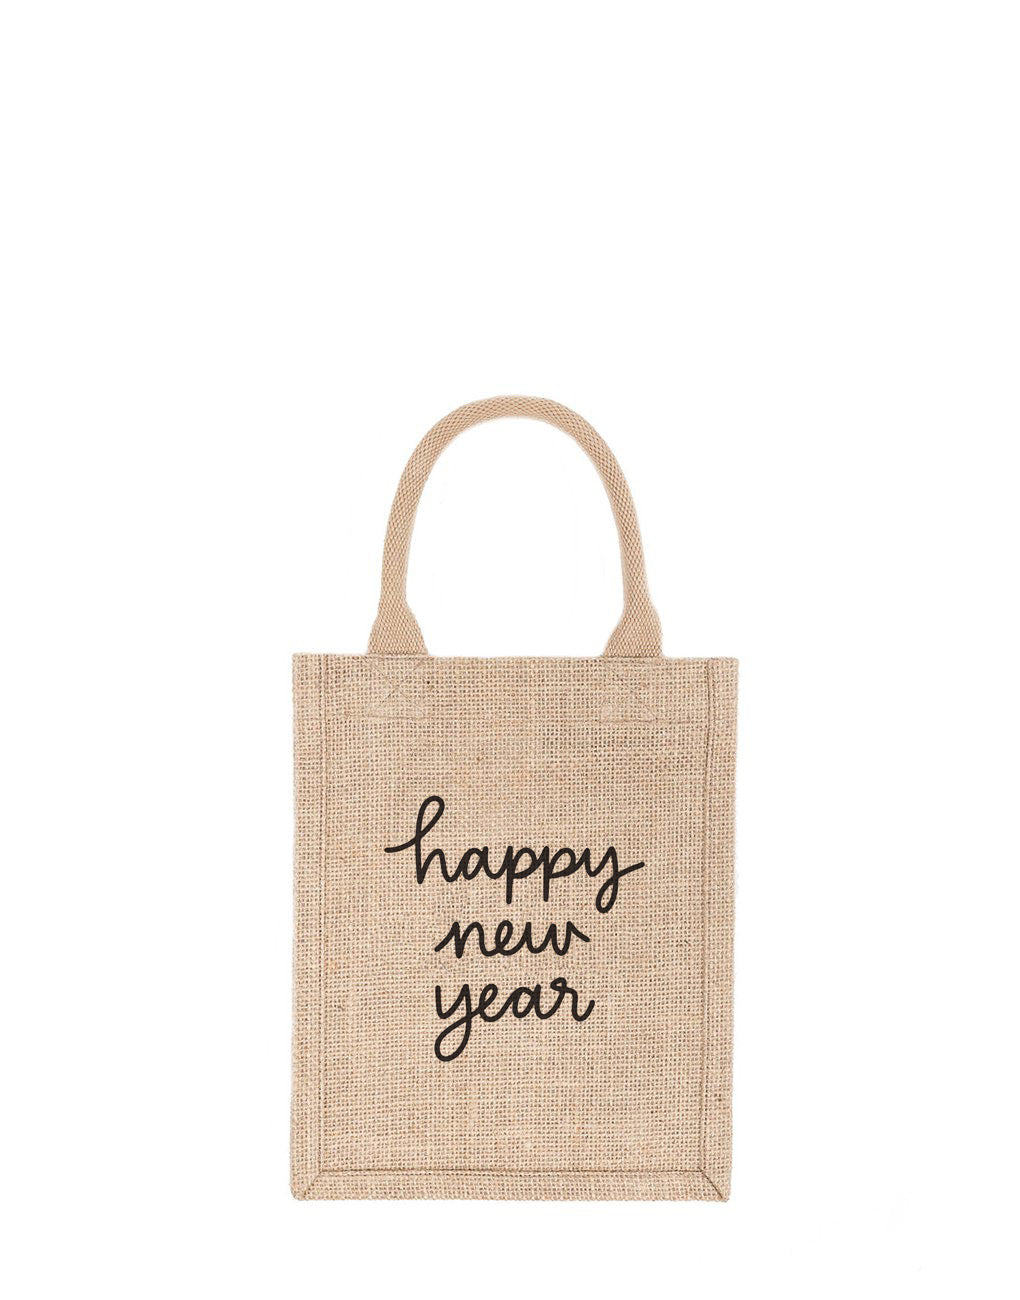 Small Happy New Year Reusable Gift Tote In Black Font | The Little Market